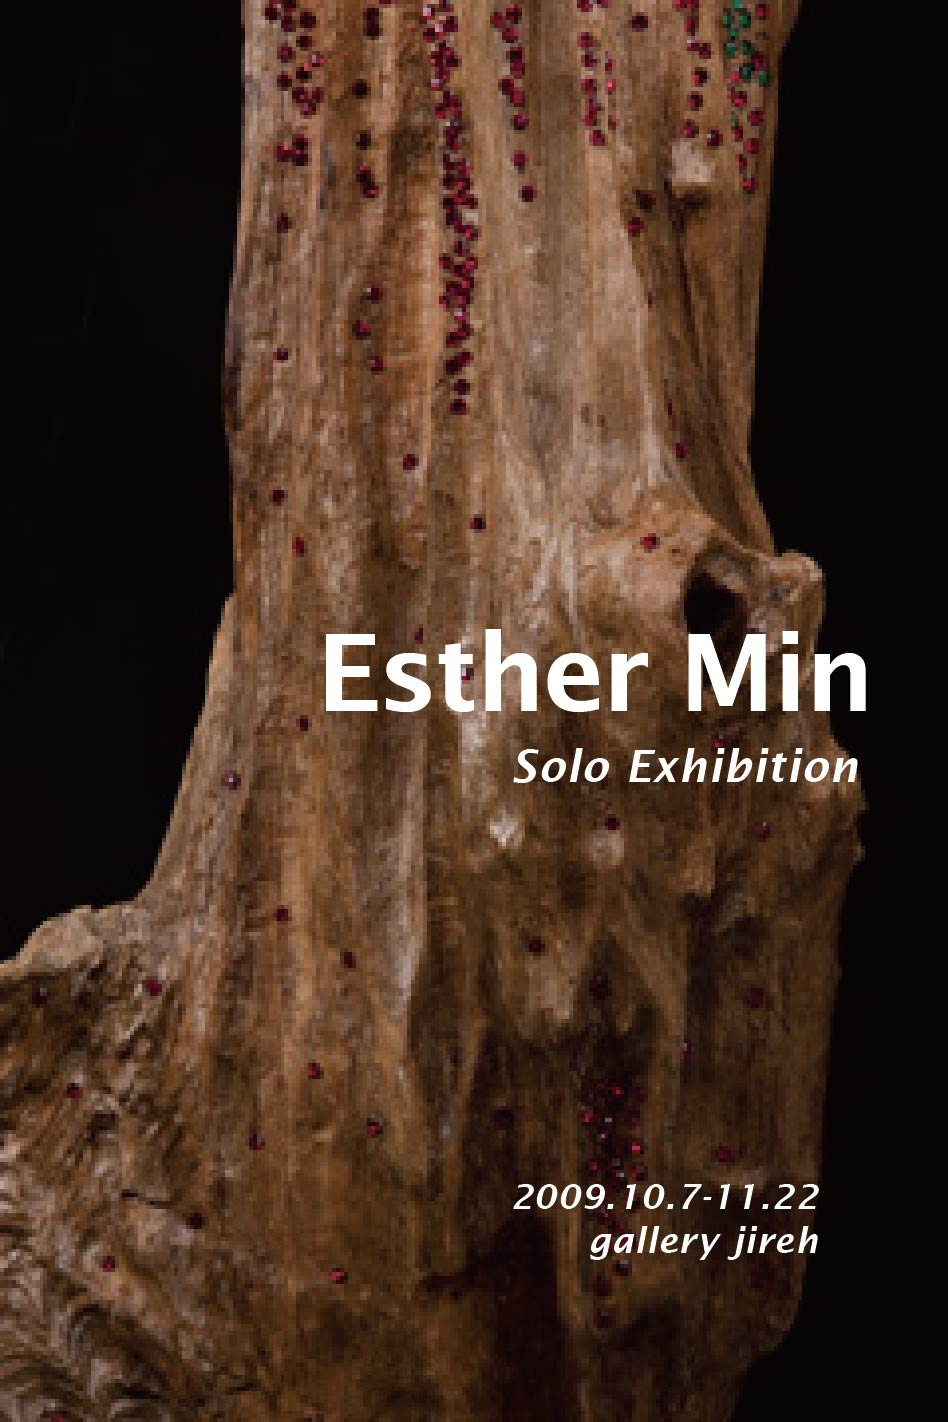 2009 Esther Min Exhibition (Gallery Jireh, Korea)